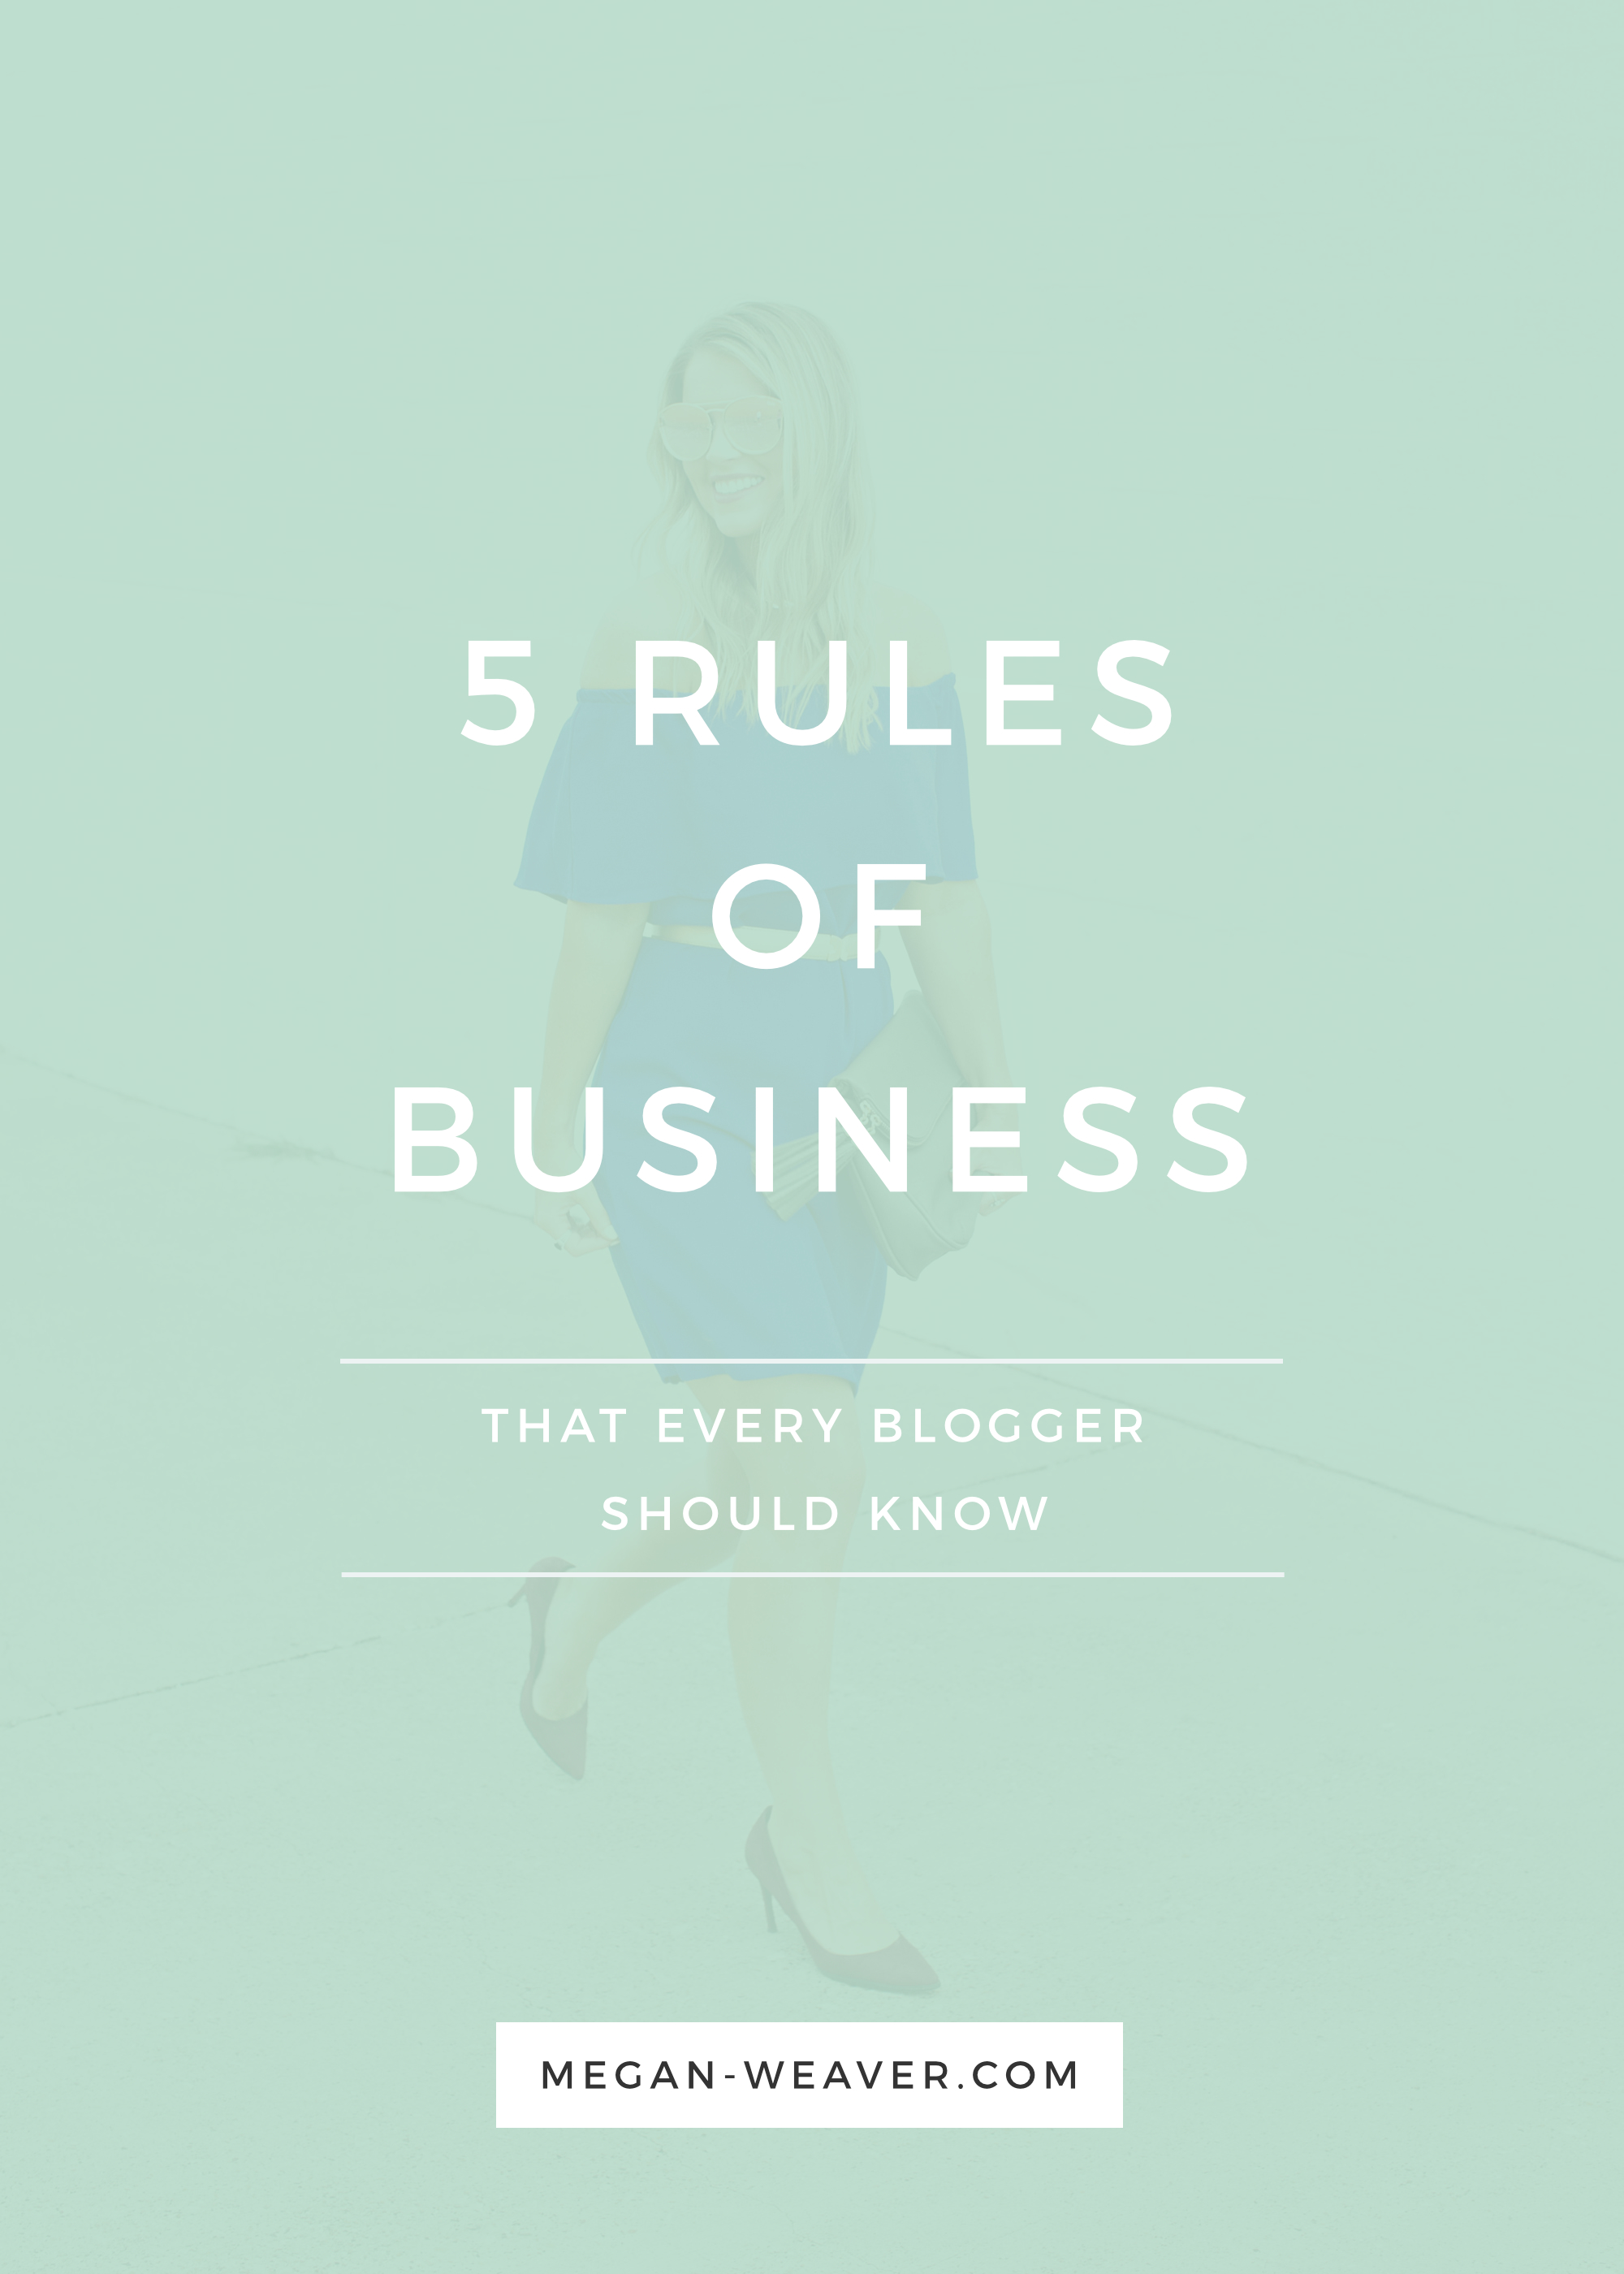 Running a successful blog is the same as running a successful business. From business owner to business owner, I'm sharing the 5 rules I've learned while building up my photography business.